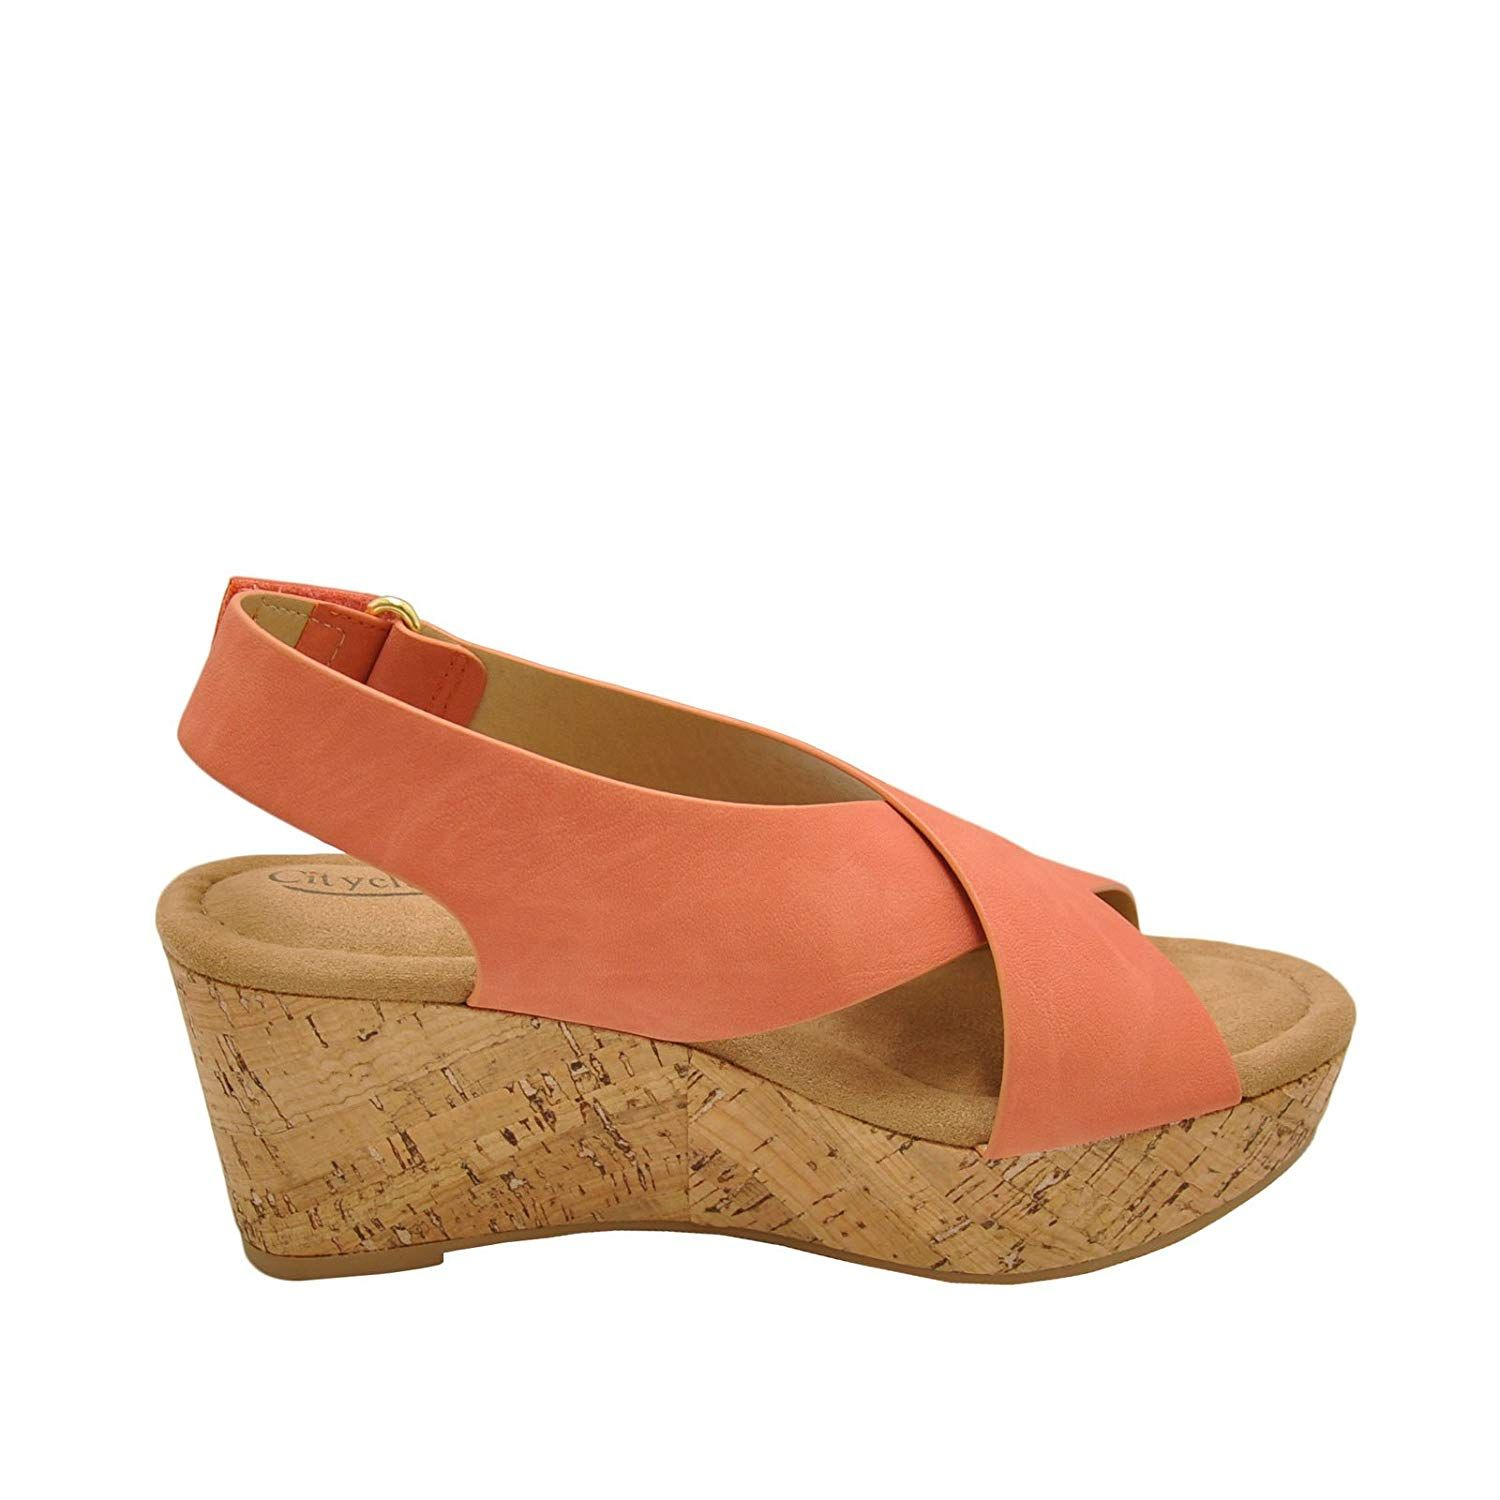 City Classified Mason Women S Crisscross Platform Cork Wedge Thanks A Lot For Viewing Our Photograph This Is Our Affi Wedges Stylish Wedges Wedge Sandals